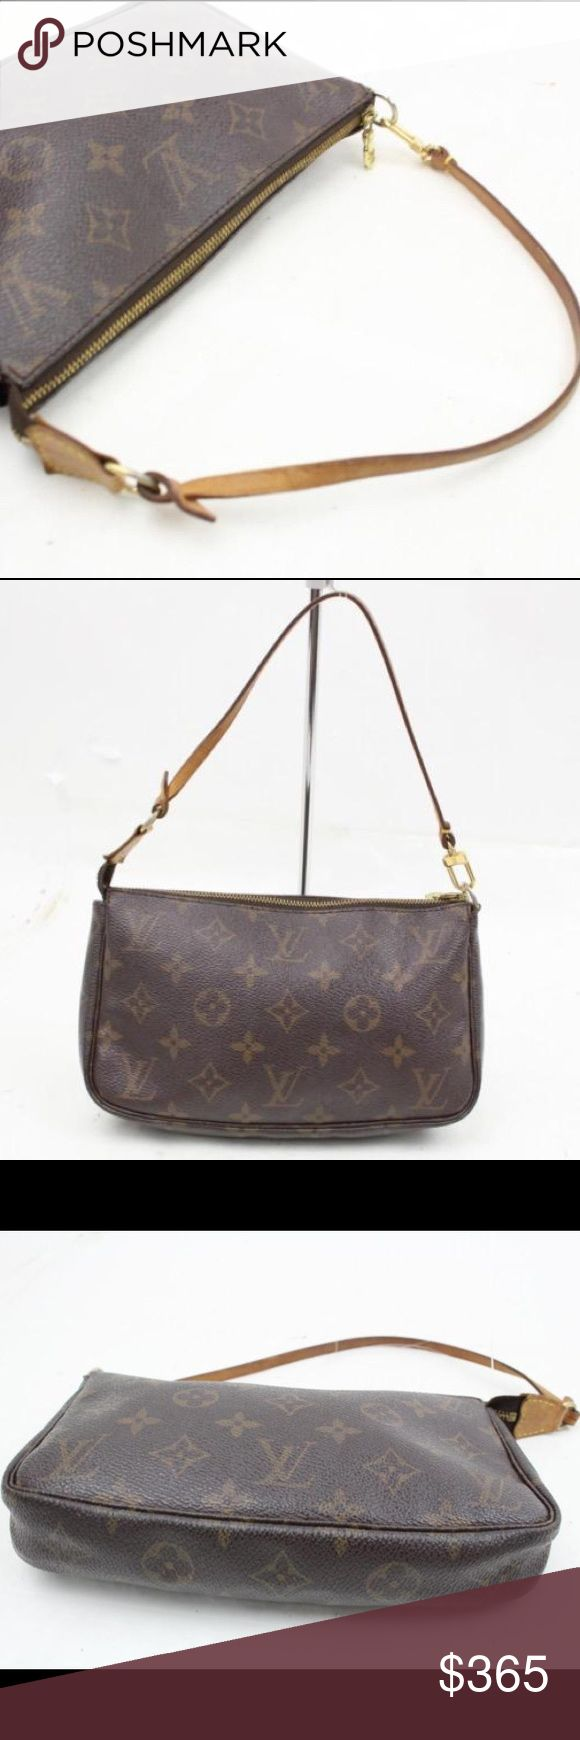 Authentic Louis Vuitton Pochette Monogram Purse Excellent condition. Made in France. Guaranteed Authentic. Louis Vuitton Bags Shoulder Bags